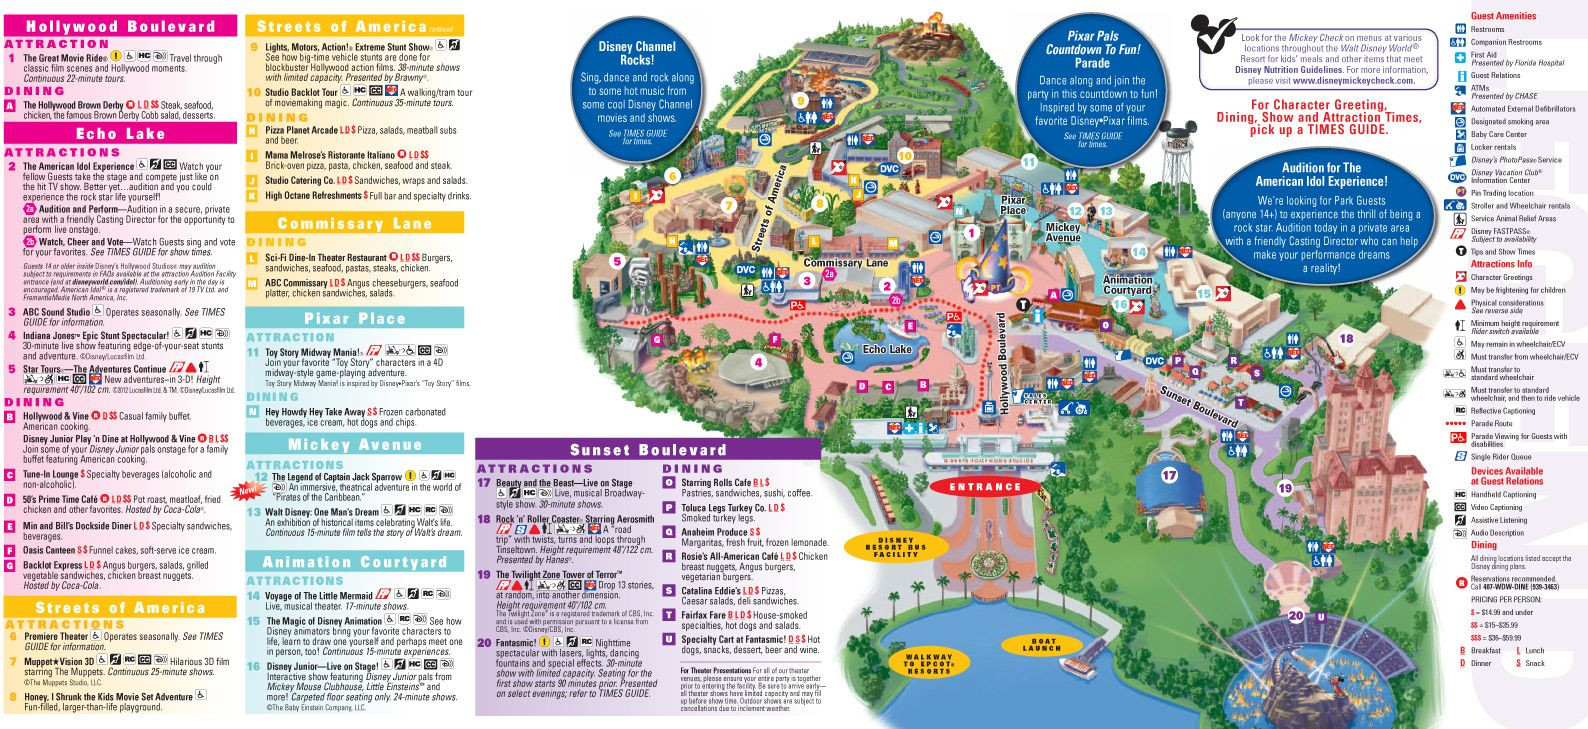 Printable Map Hollywood Studios Inspirational Walt Disney World Map 2014 Printable Park and for Hollywood Studios